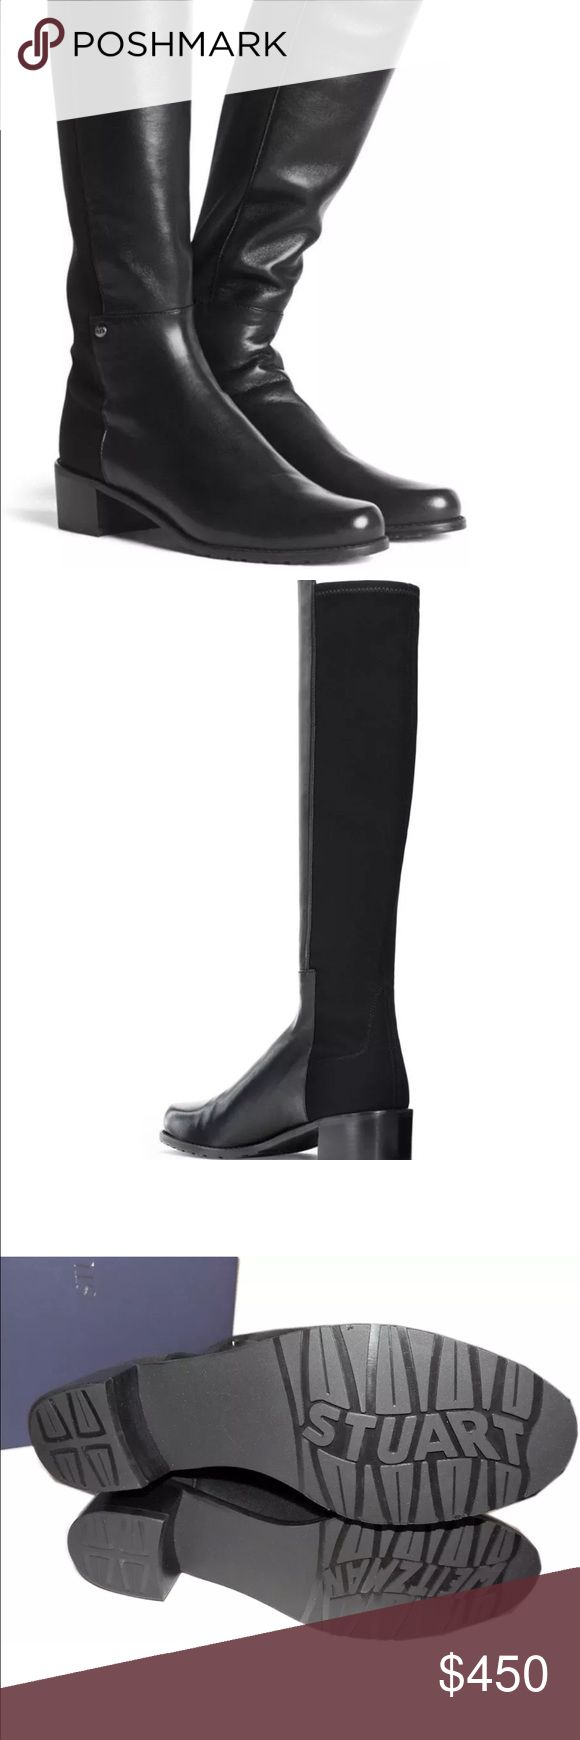 Stuart Weitzman 5050 Boot Brand new without box. Some folding on the leather from storage and tried on couple times at home. No wear on the bottom. This boot fits so well that makes your legs slim. Very classic boot. Stuart Weitzman Shoes